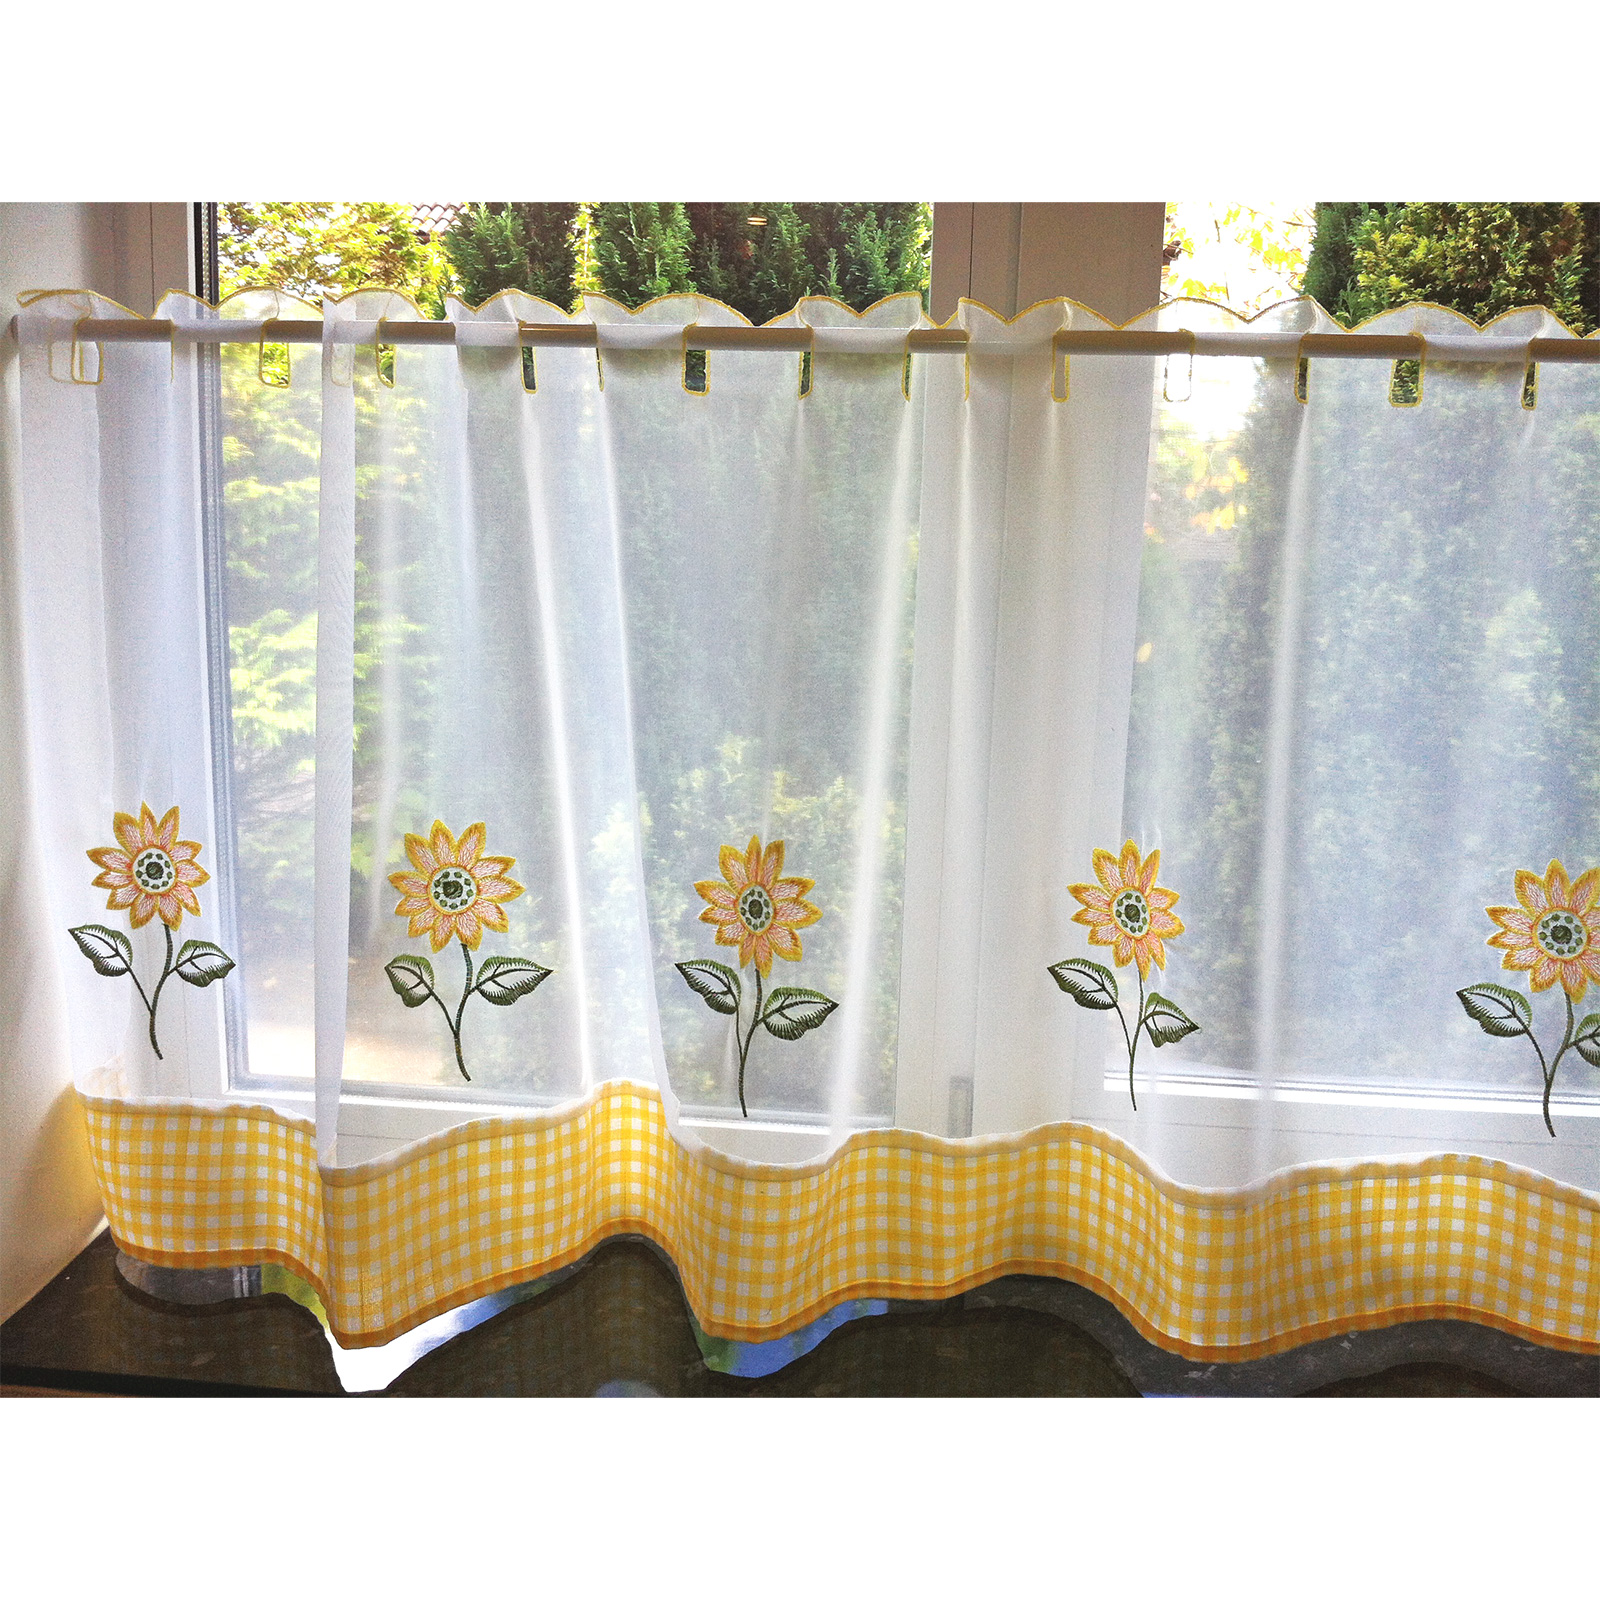 Kitchen curtain colors Decorate the house with beautiful curtains